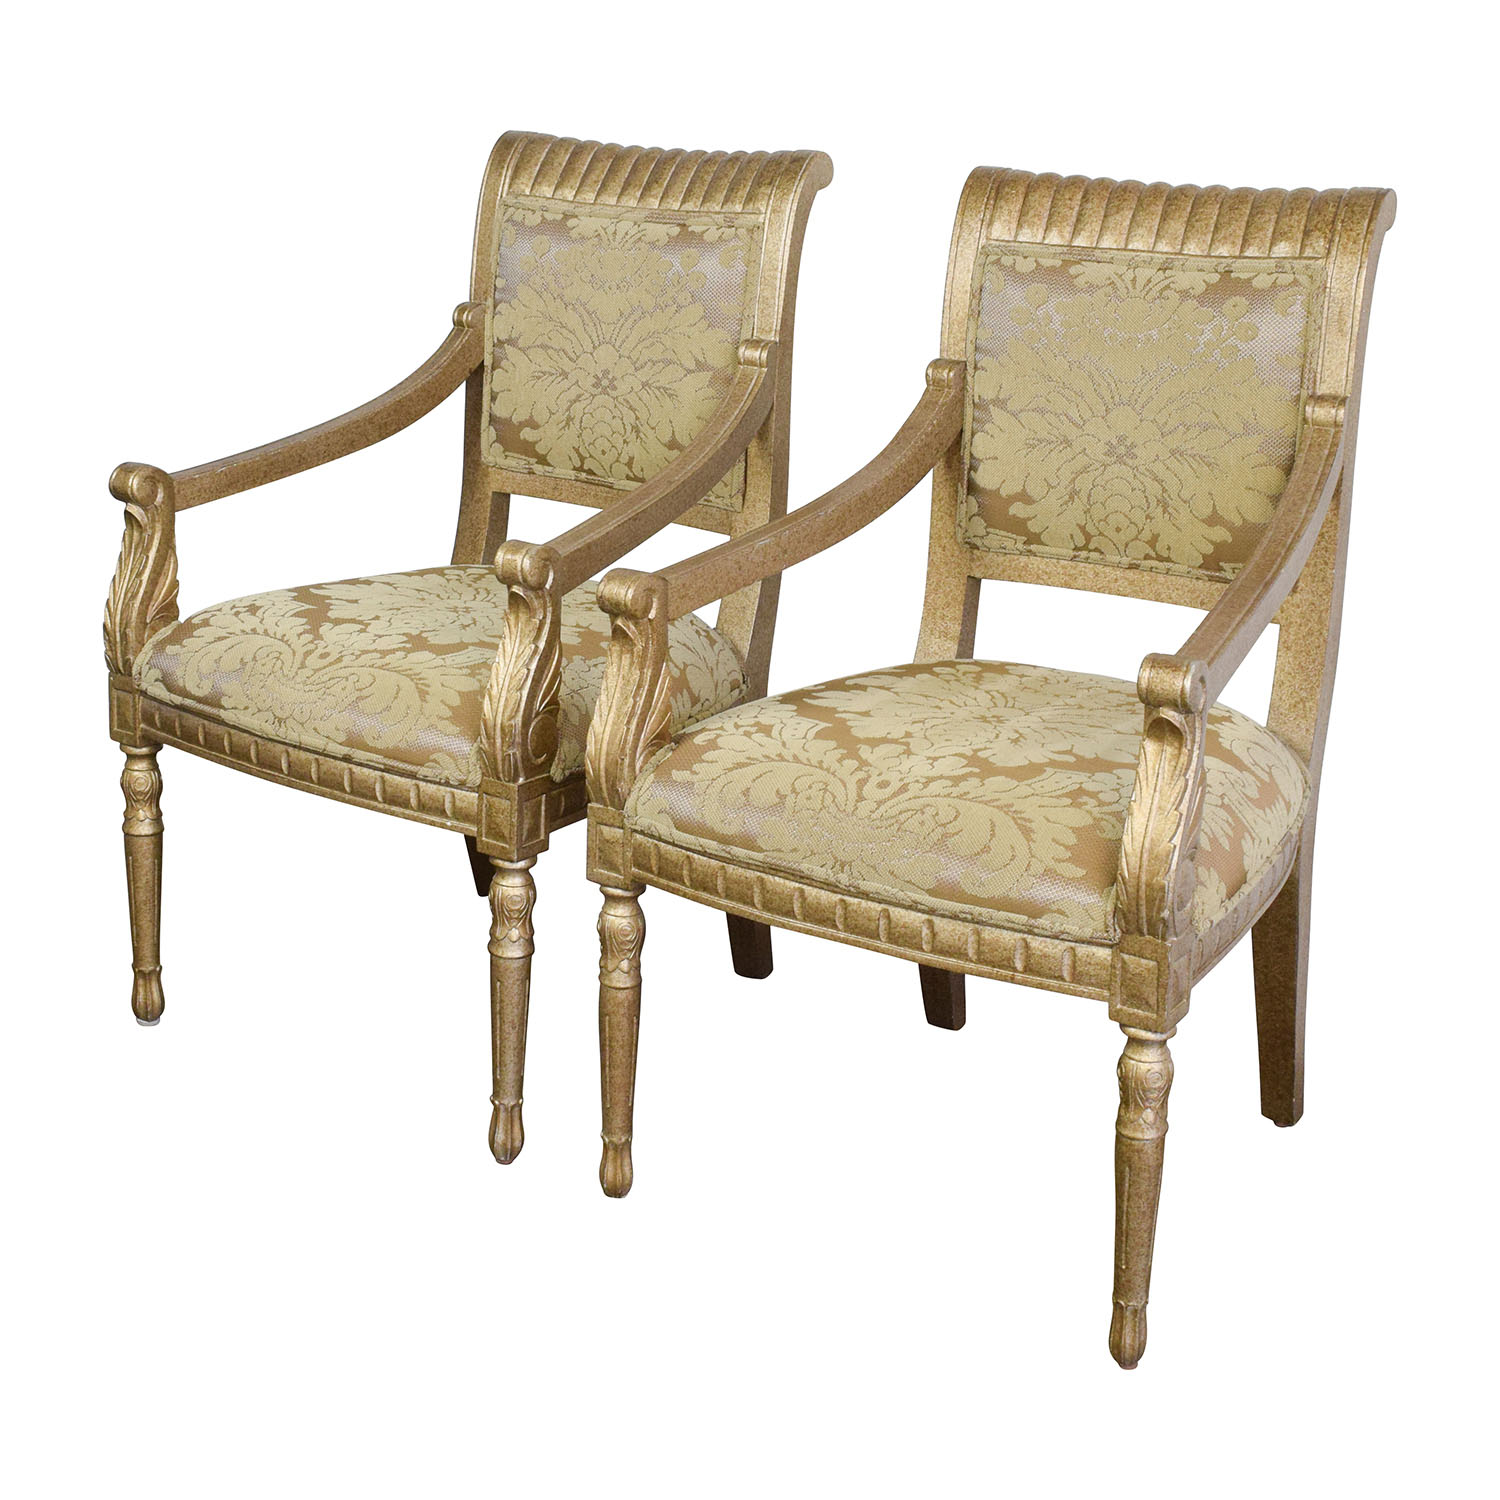 Upholstered Accent Chairs With Arms 80 Off Rustic Gold Upholstered Arm Accent Chairs Chairs